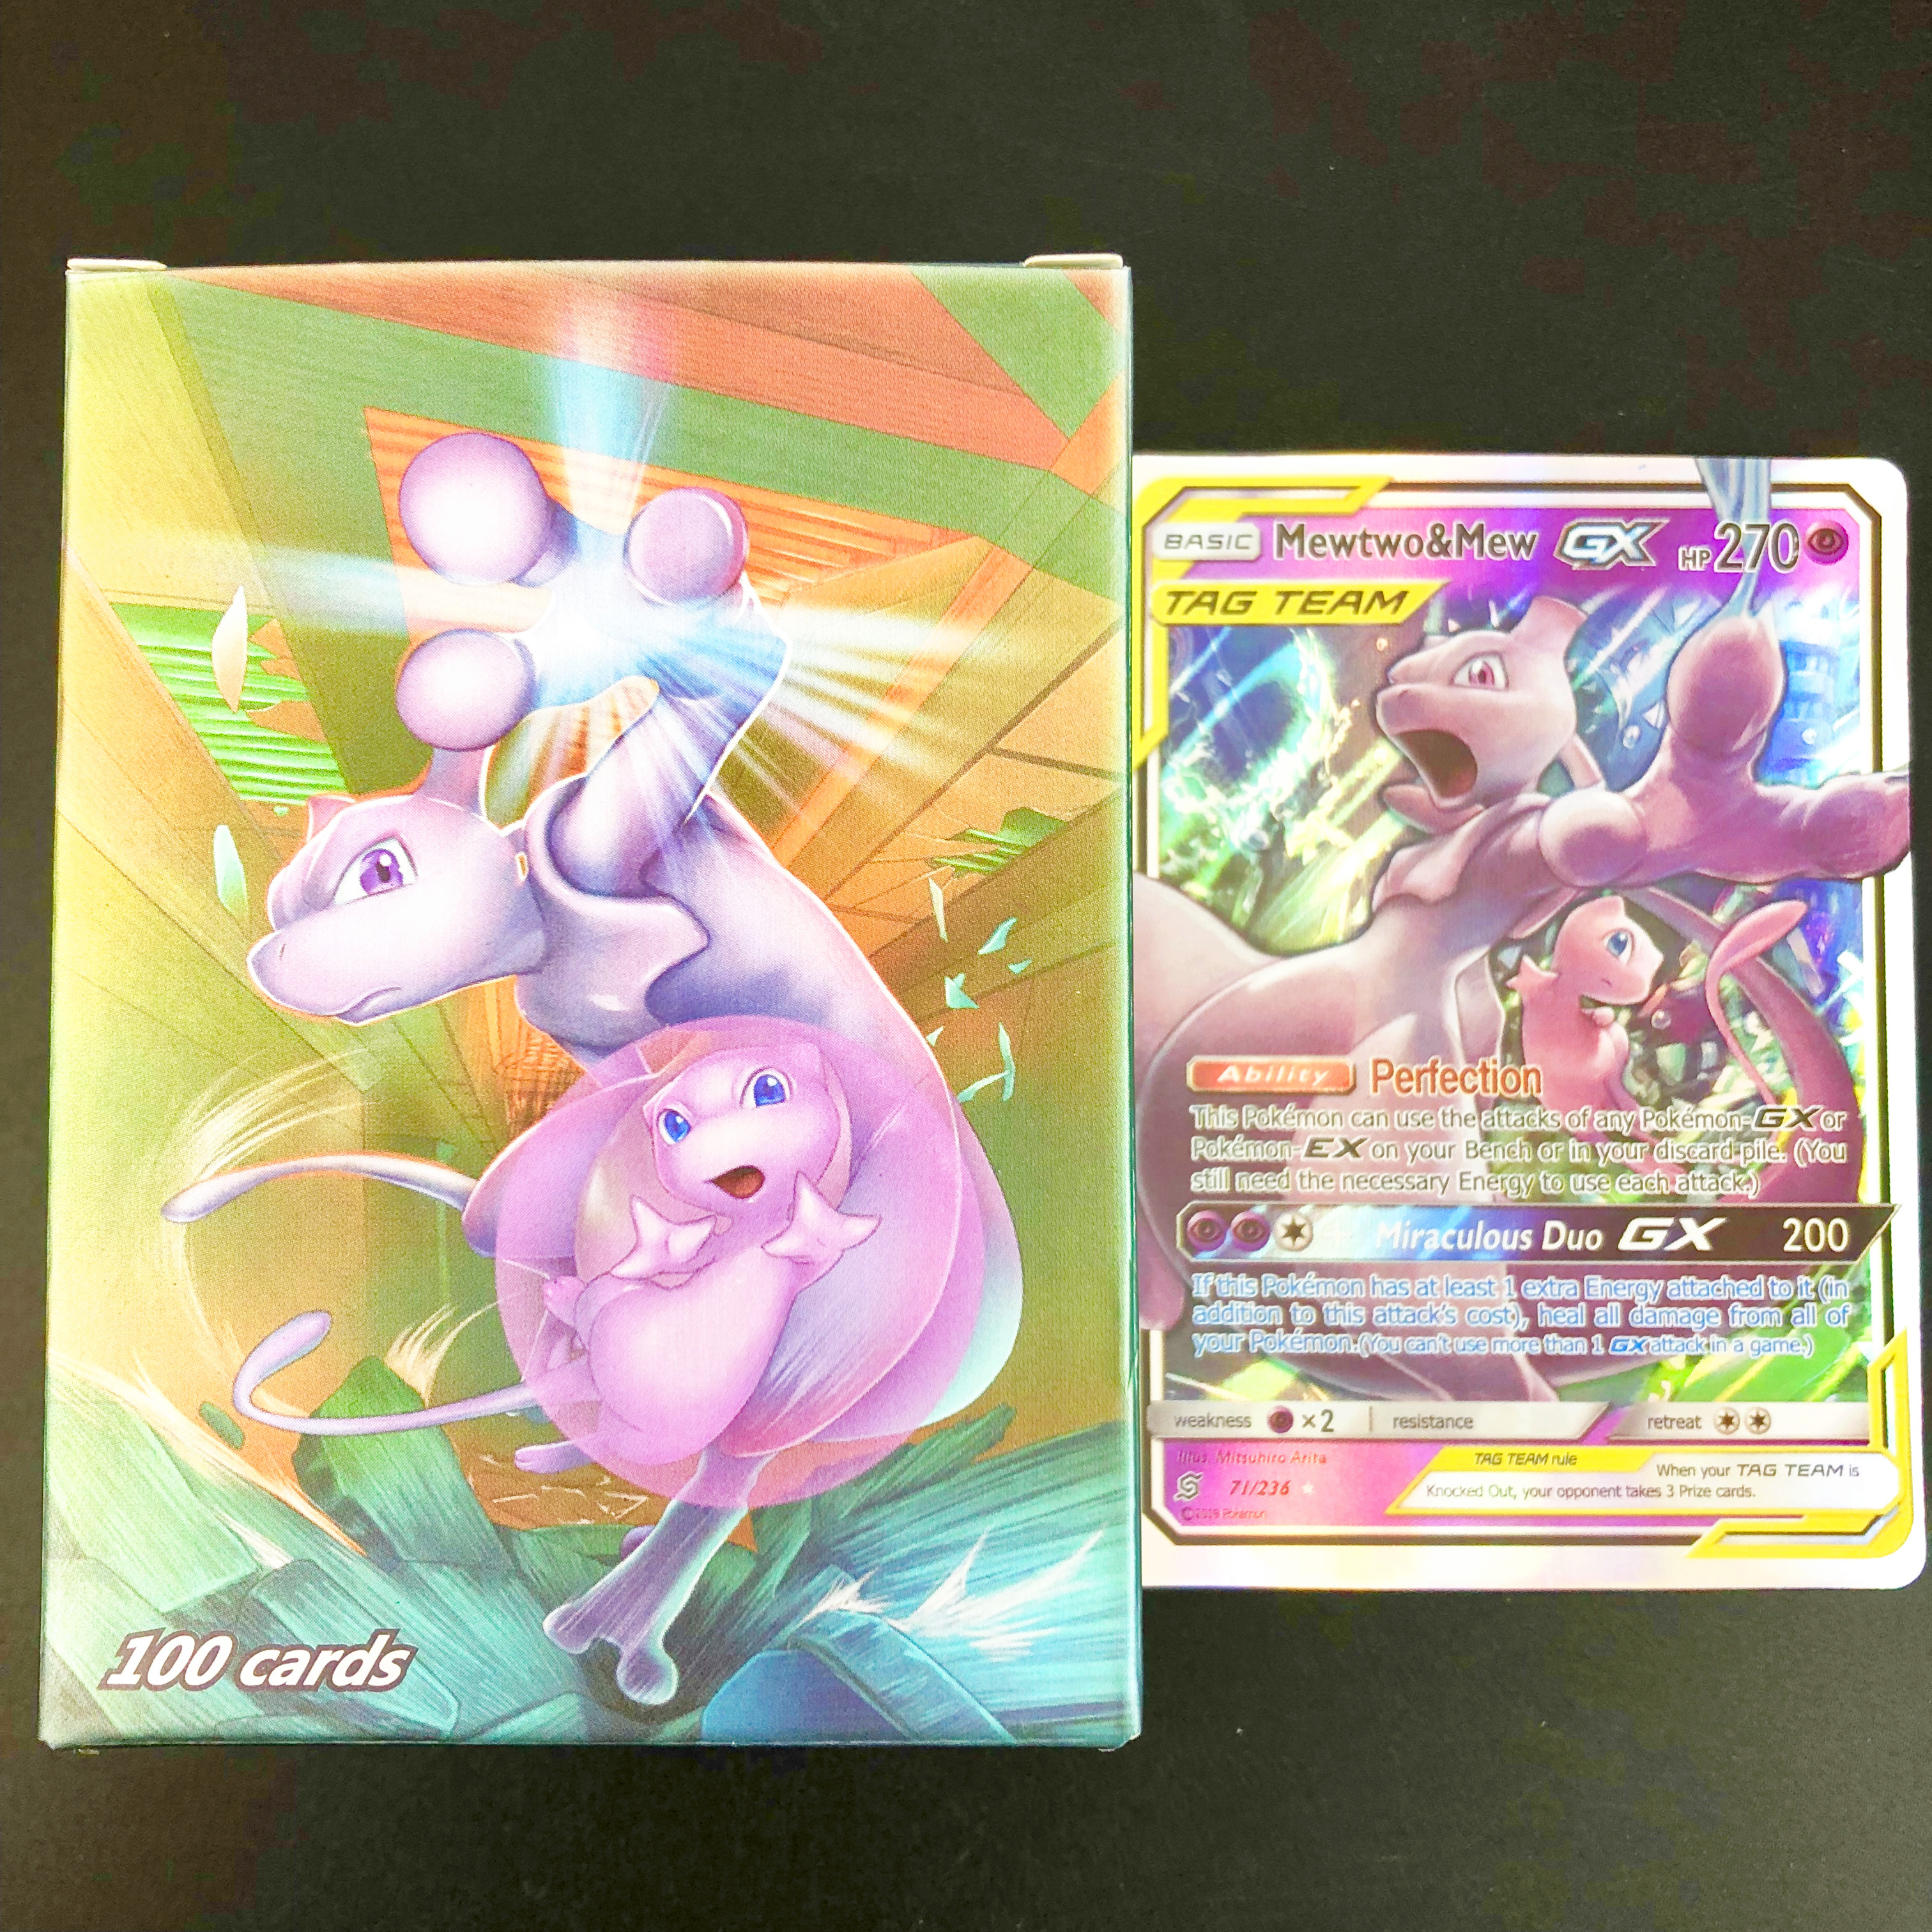 new-tag-team-ex-mega-gx-trainer-shining-font-b-pokemon-b-font-cards-game-battle-carte-trading-english-cards-kids-toys-gifts